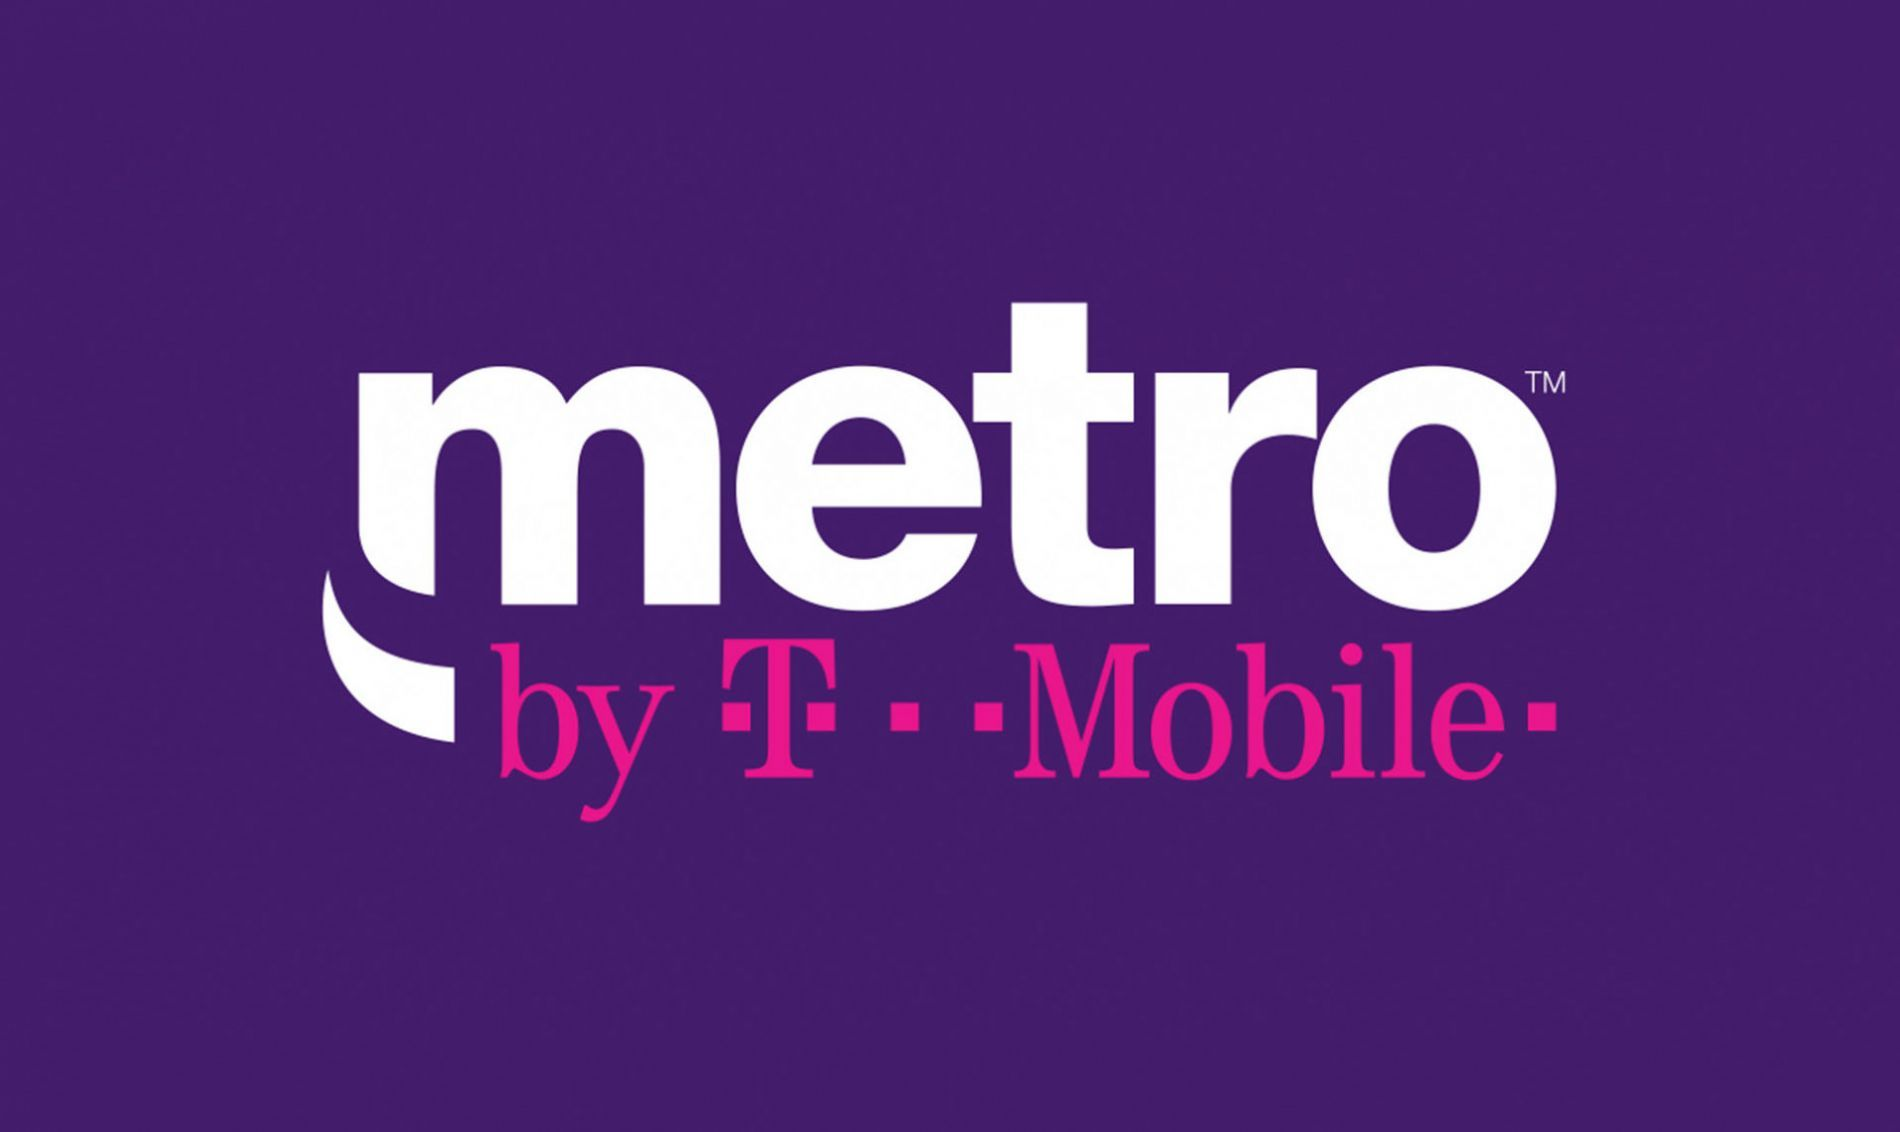 'Best One Yet' by Madison Mars in Metro by T-Mobile spot!